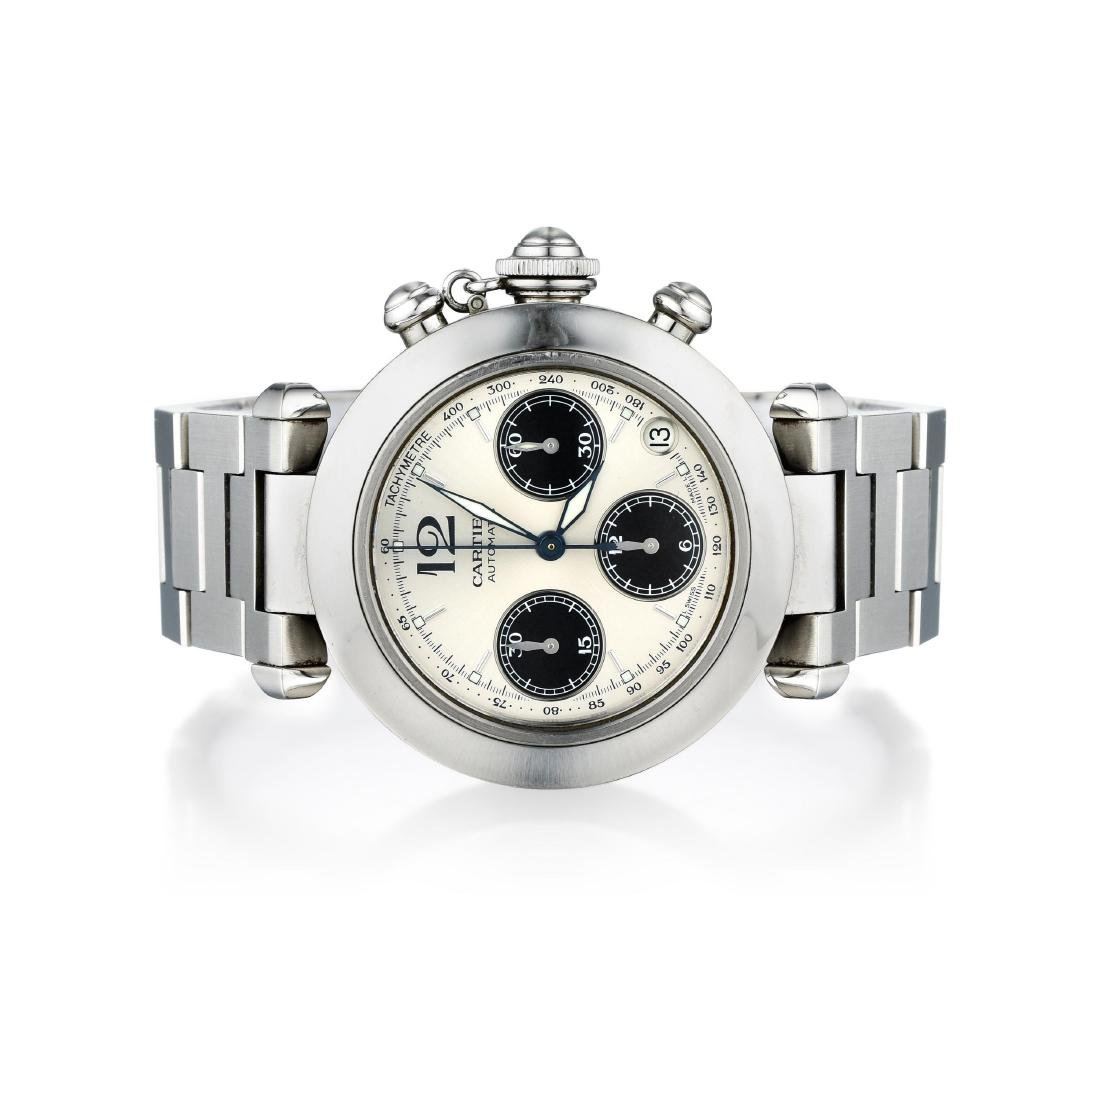 Cartier Pasha Chronograph Stainless Steel Watch ref.